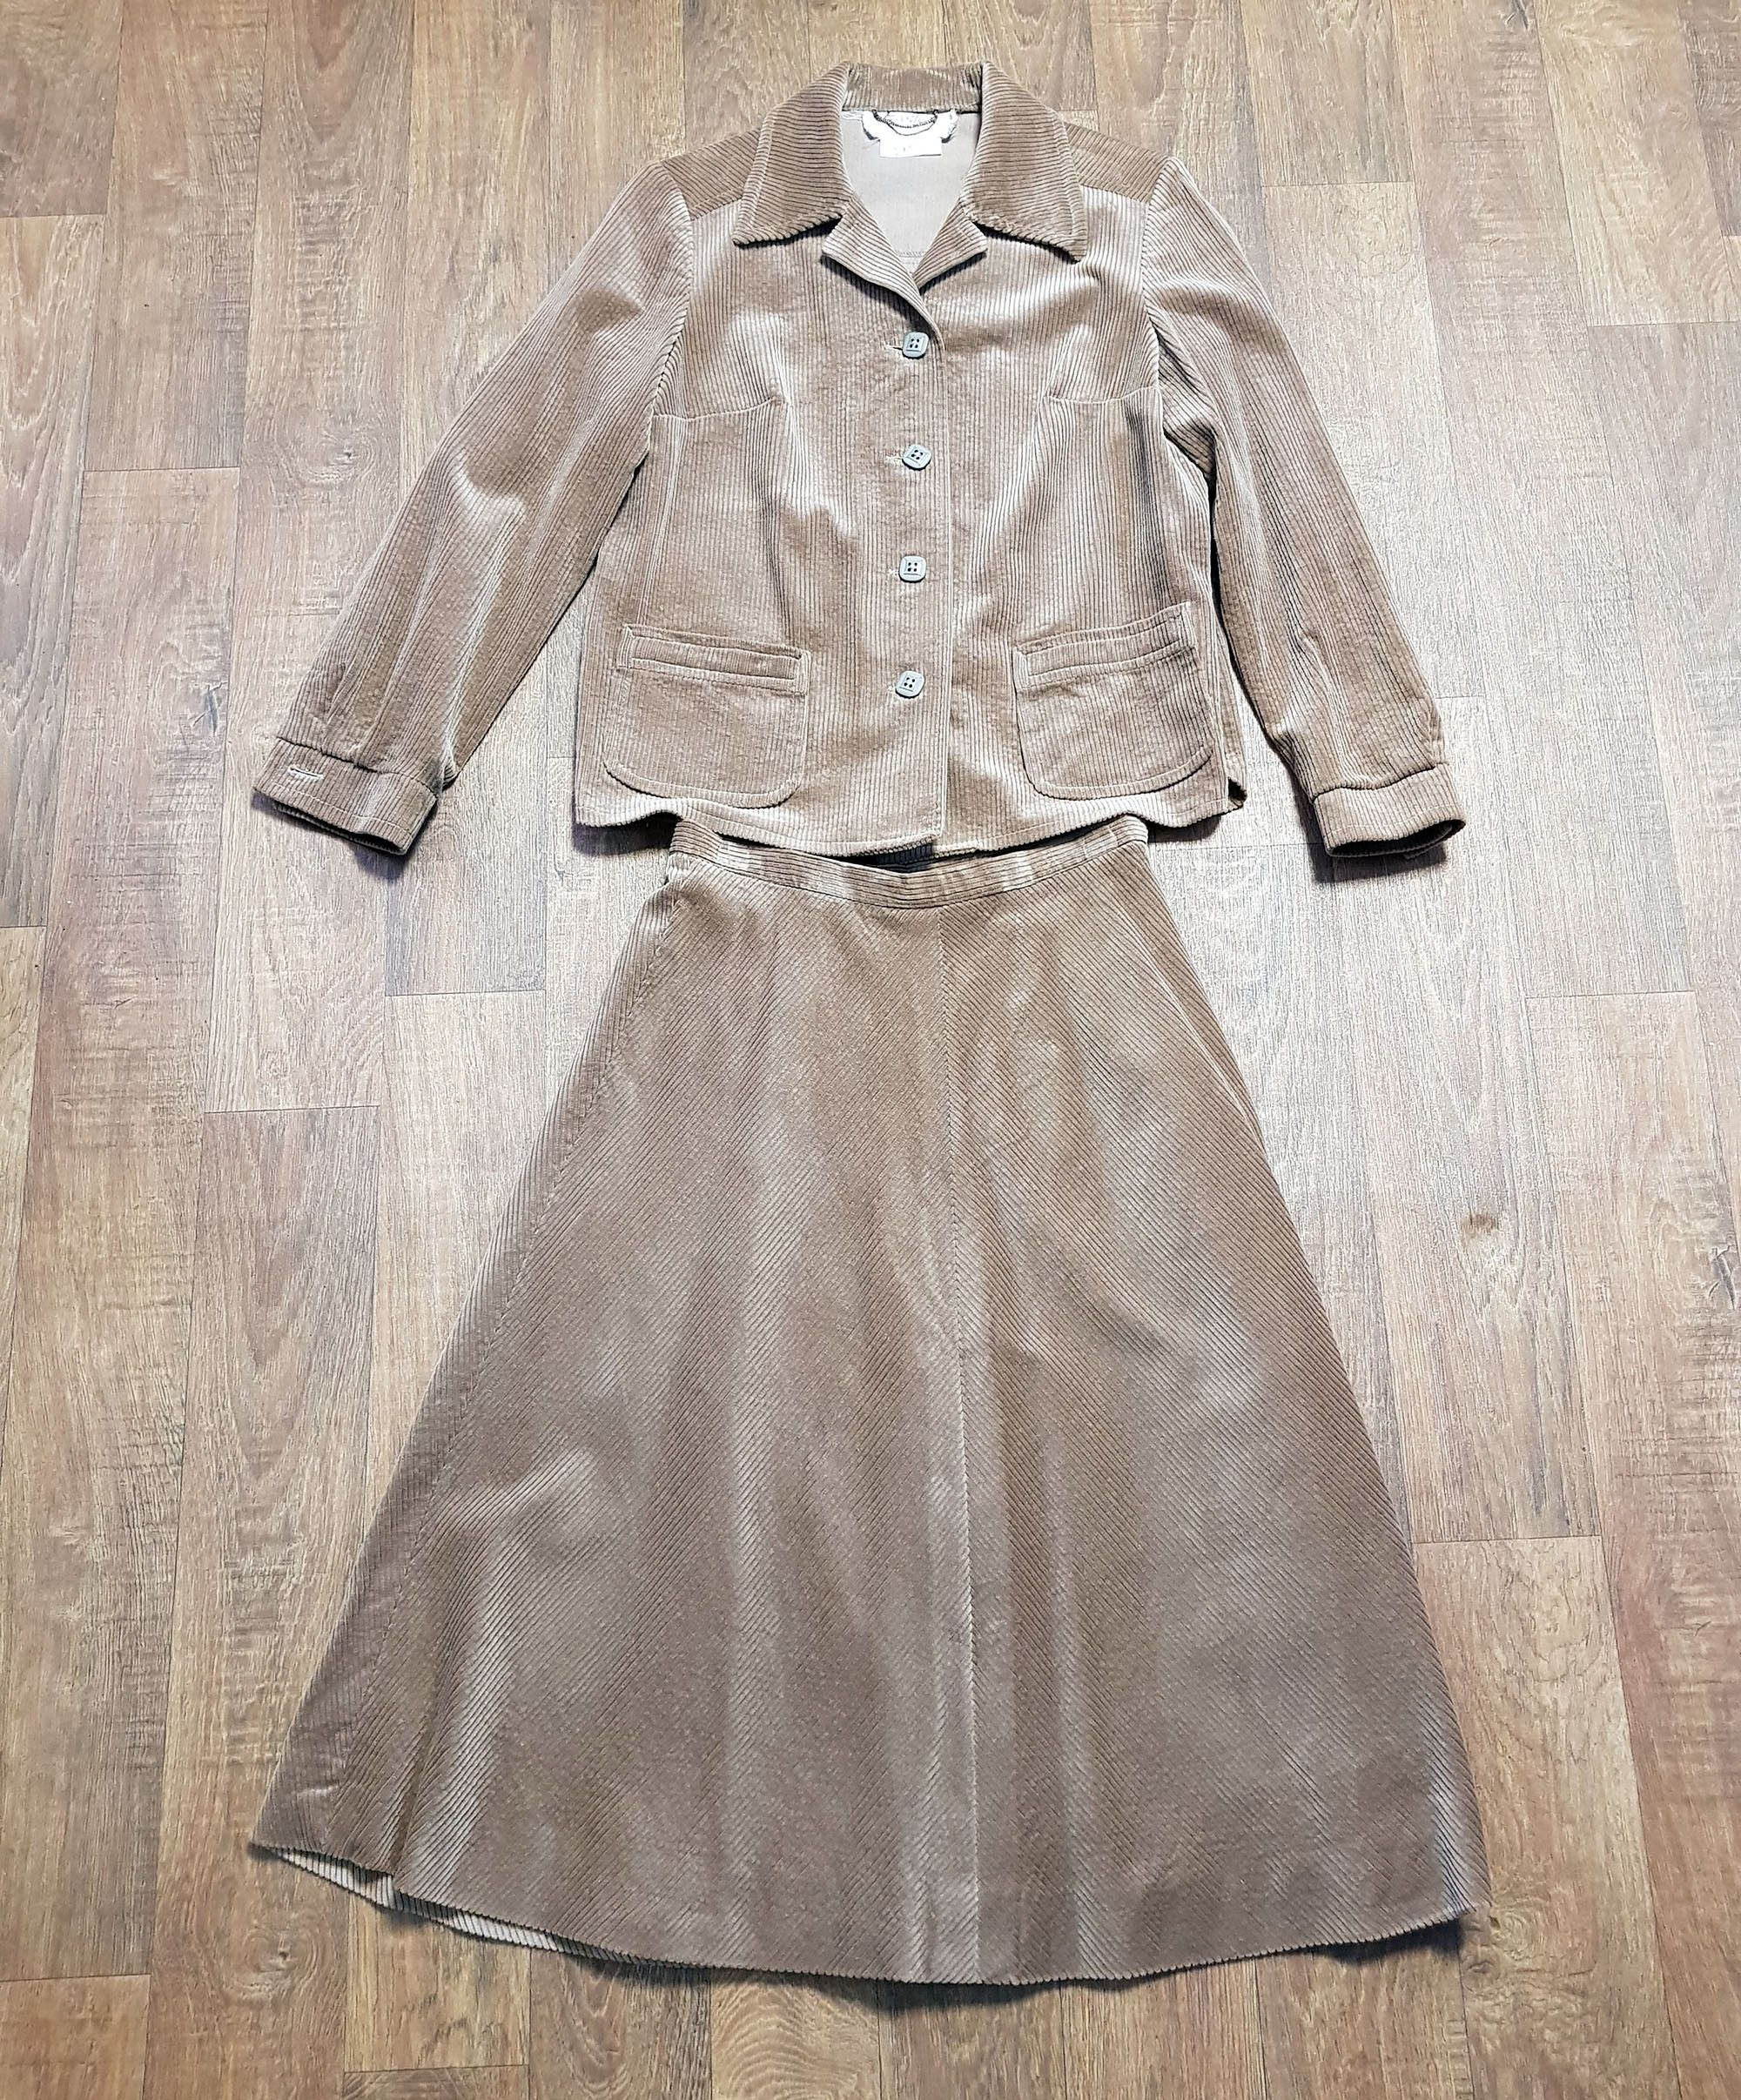 Vintage Skirt Suit | 1970s Vintage Brown Cord Skirt Suit UK Size 10